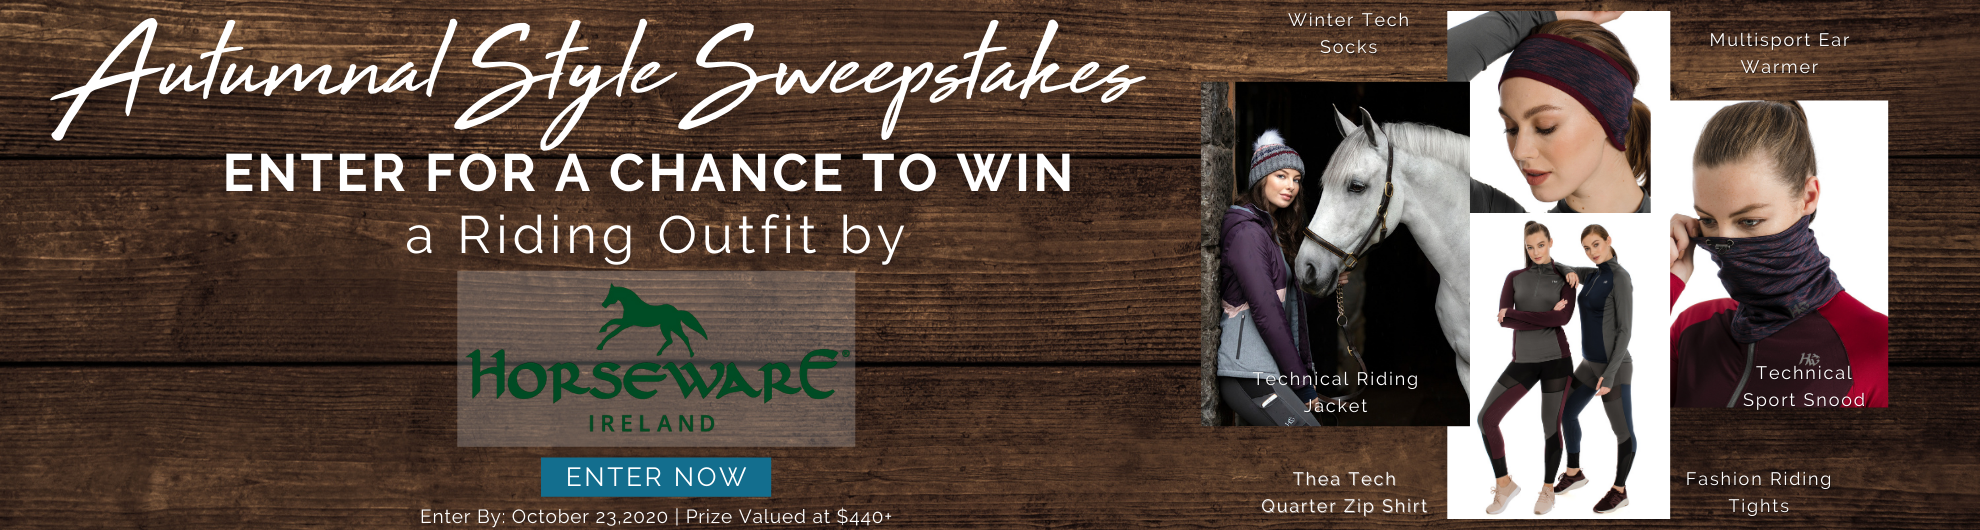 Enter the Horseware Autumnal Style Sweepstakes